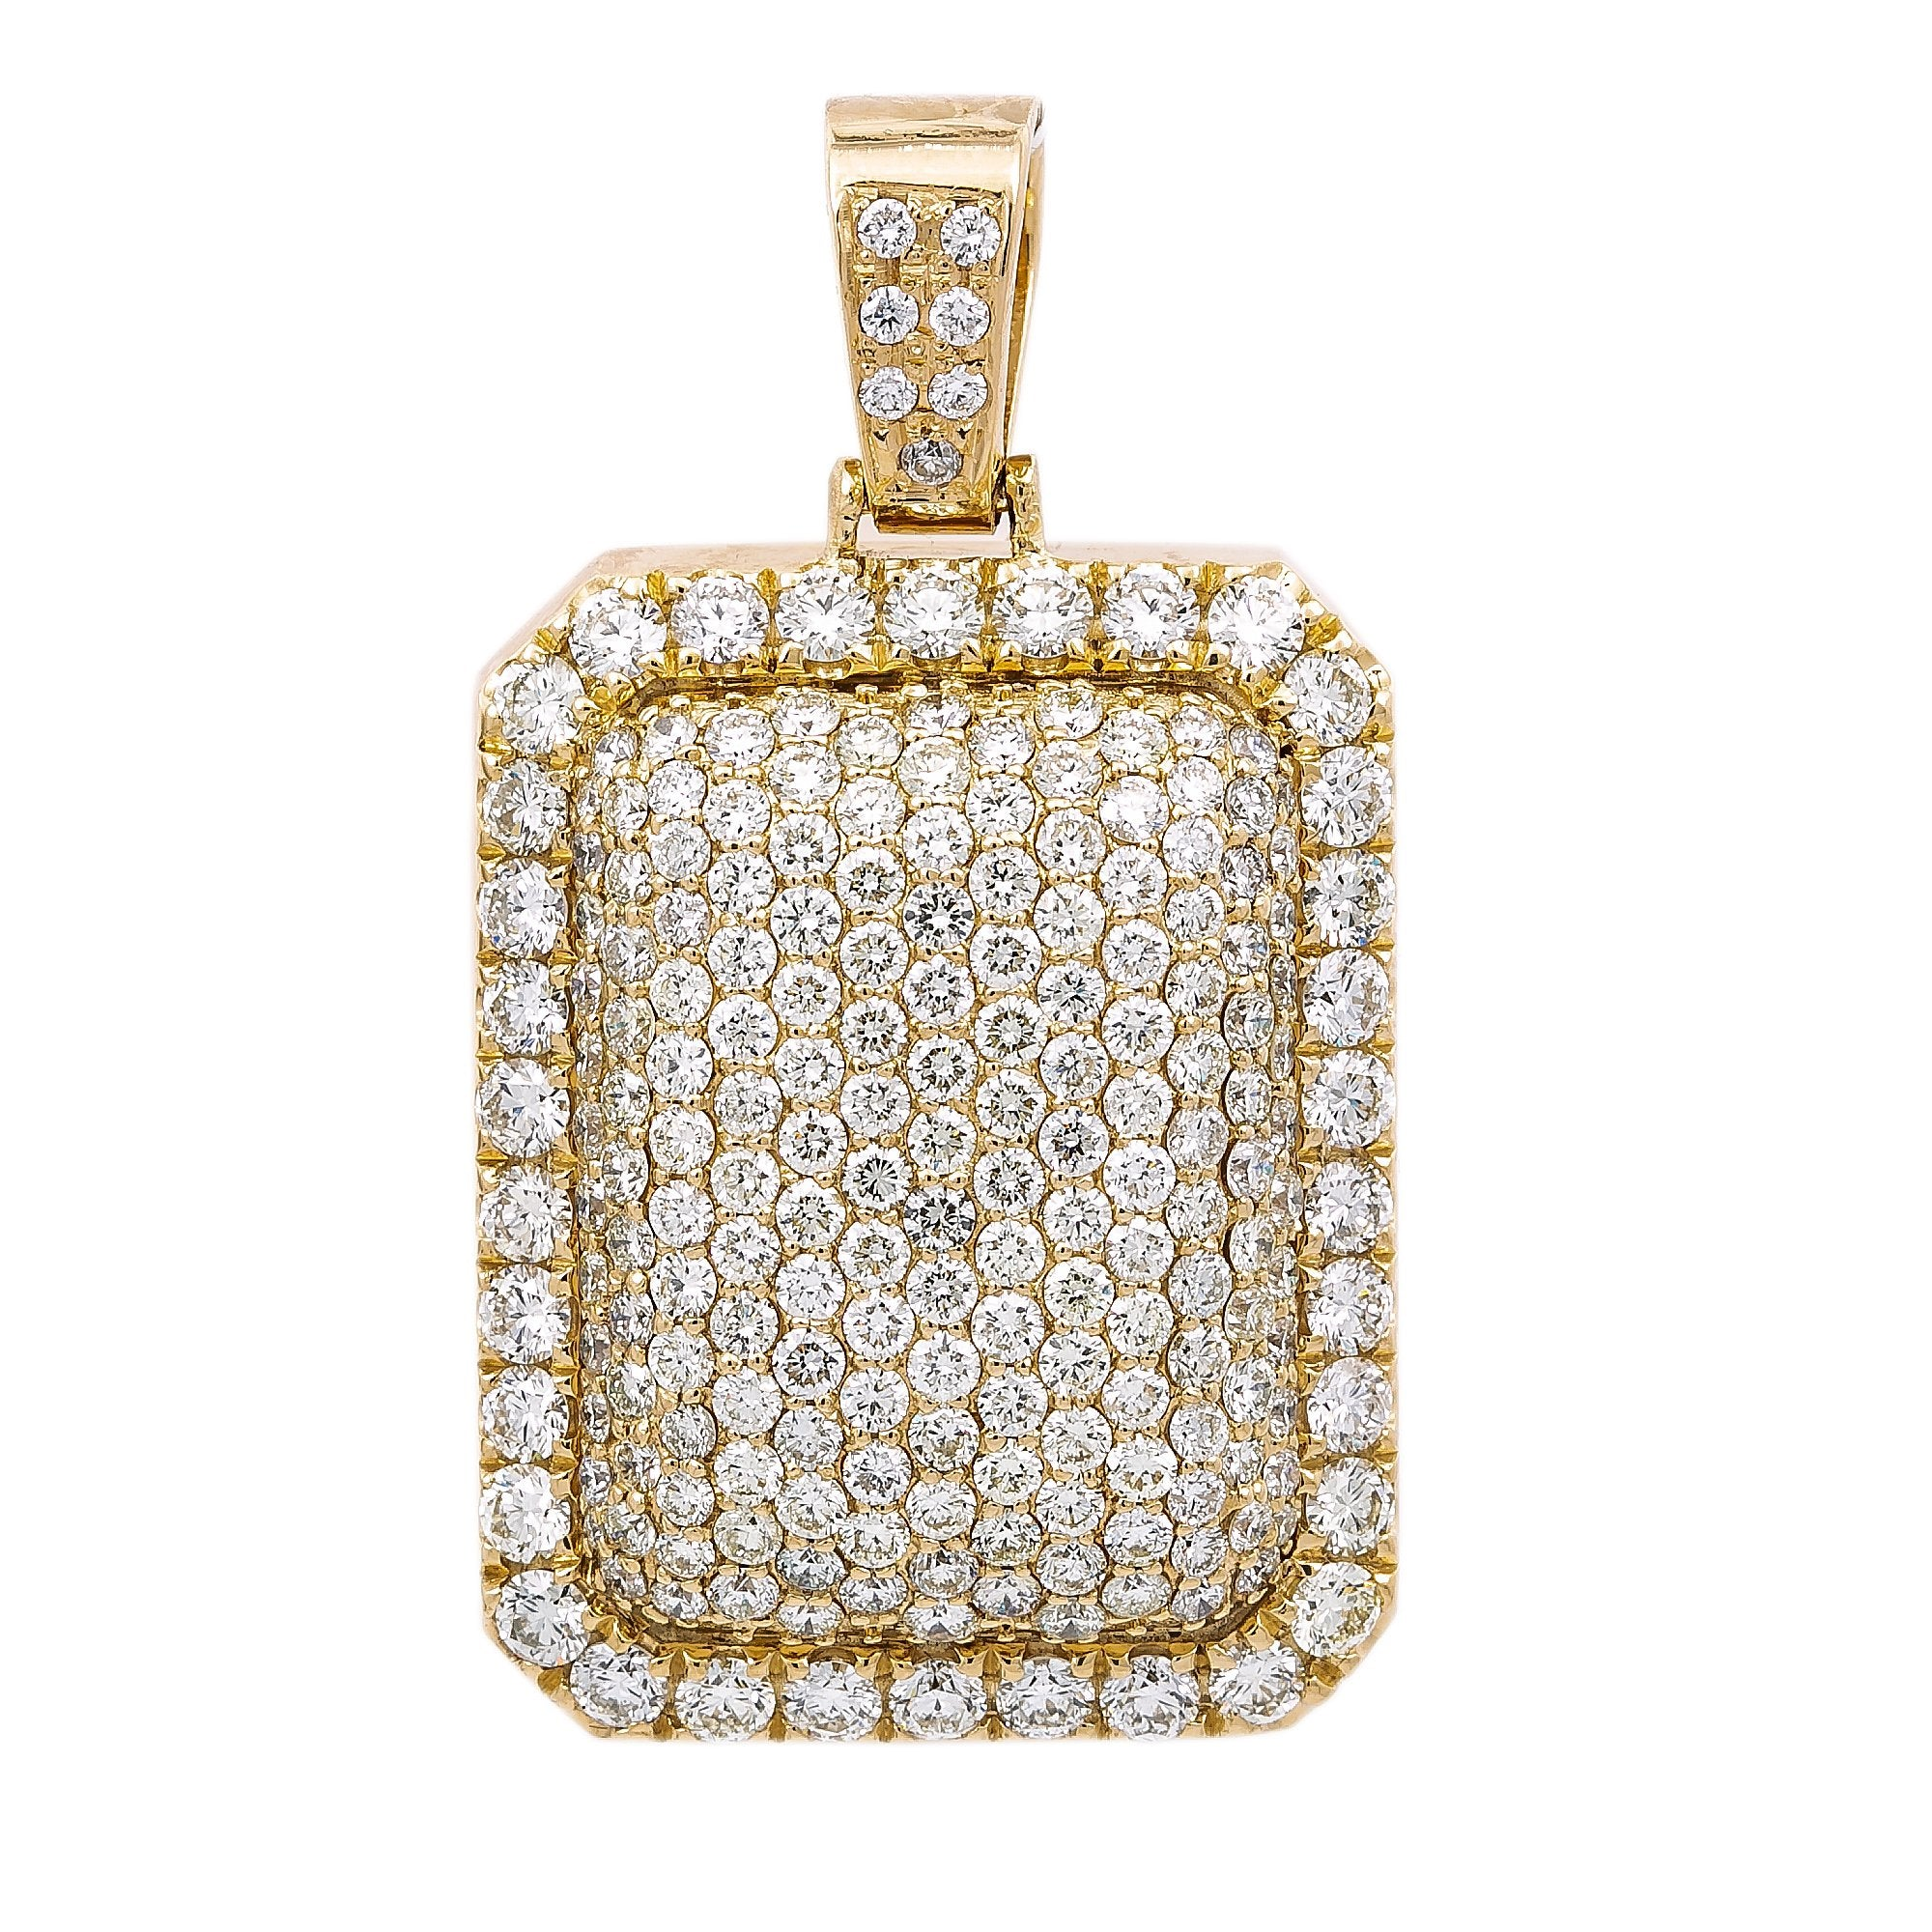 Unisex Rectangular 14K Yellow Gold Pendant with 6.90 CT Diamonds